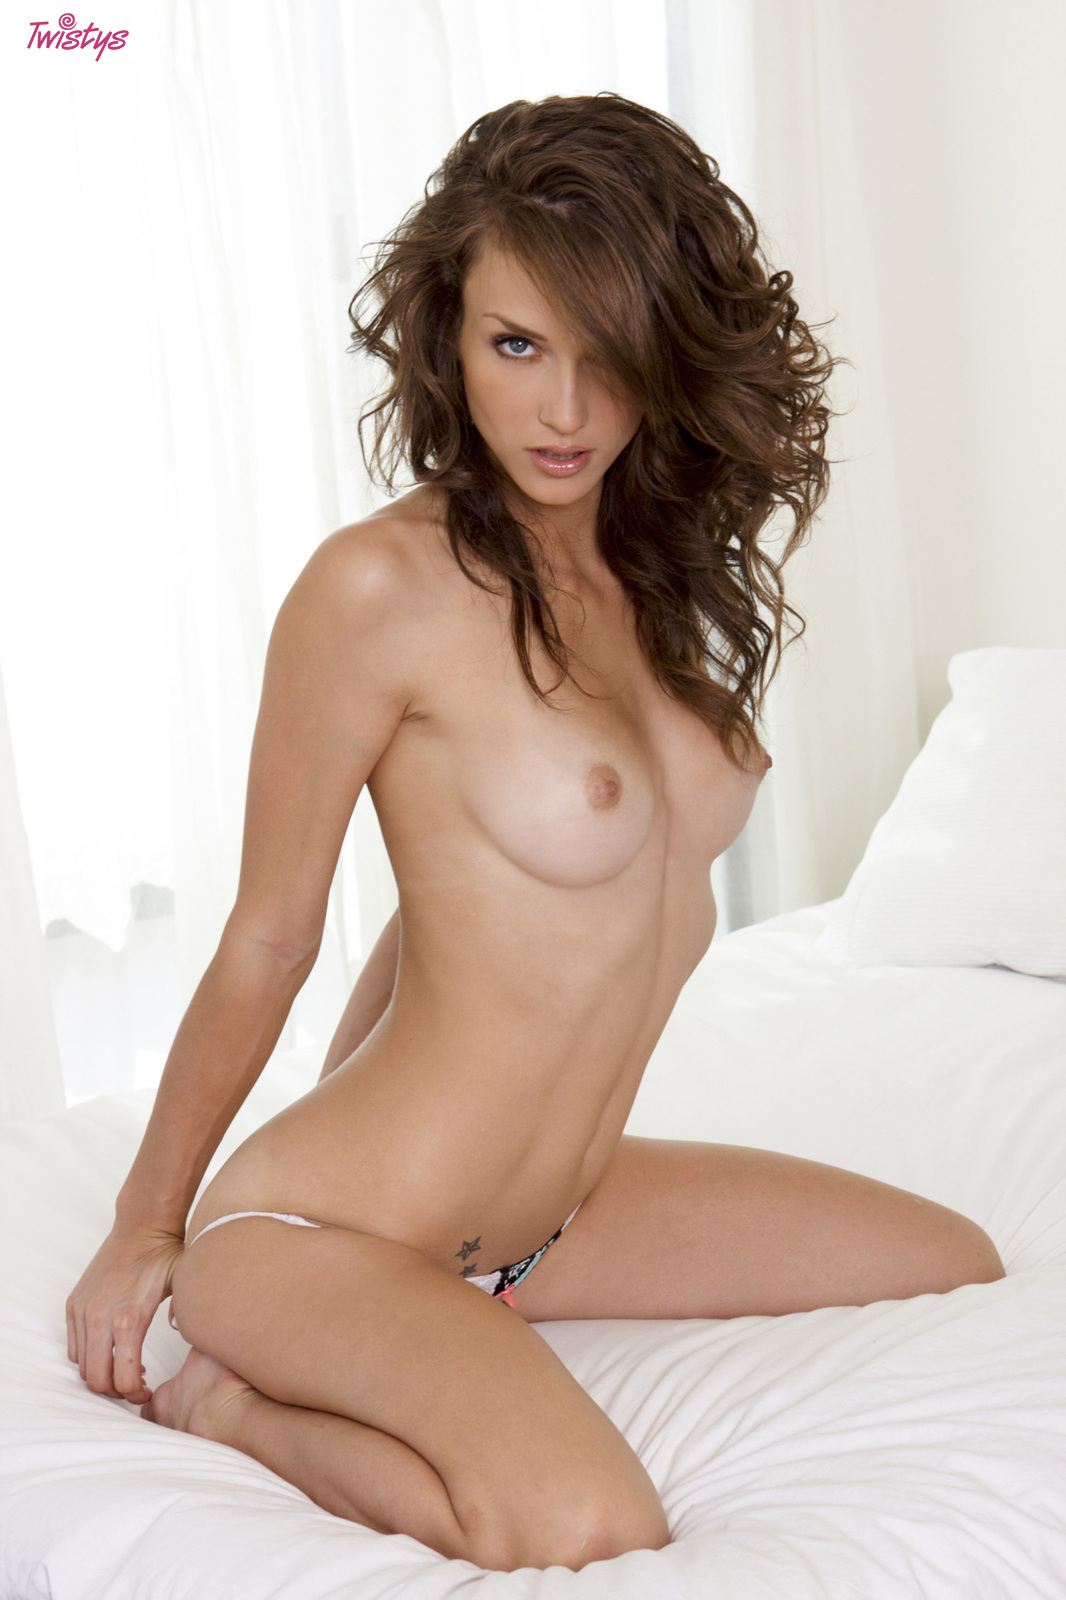 malena morgan nude in bed 008 NPC Diamond Natural BB, Fitness, Figure & Bikini Classic   Figure Part 2